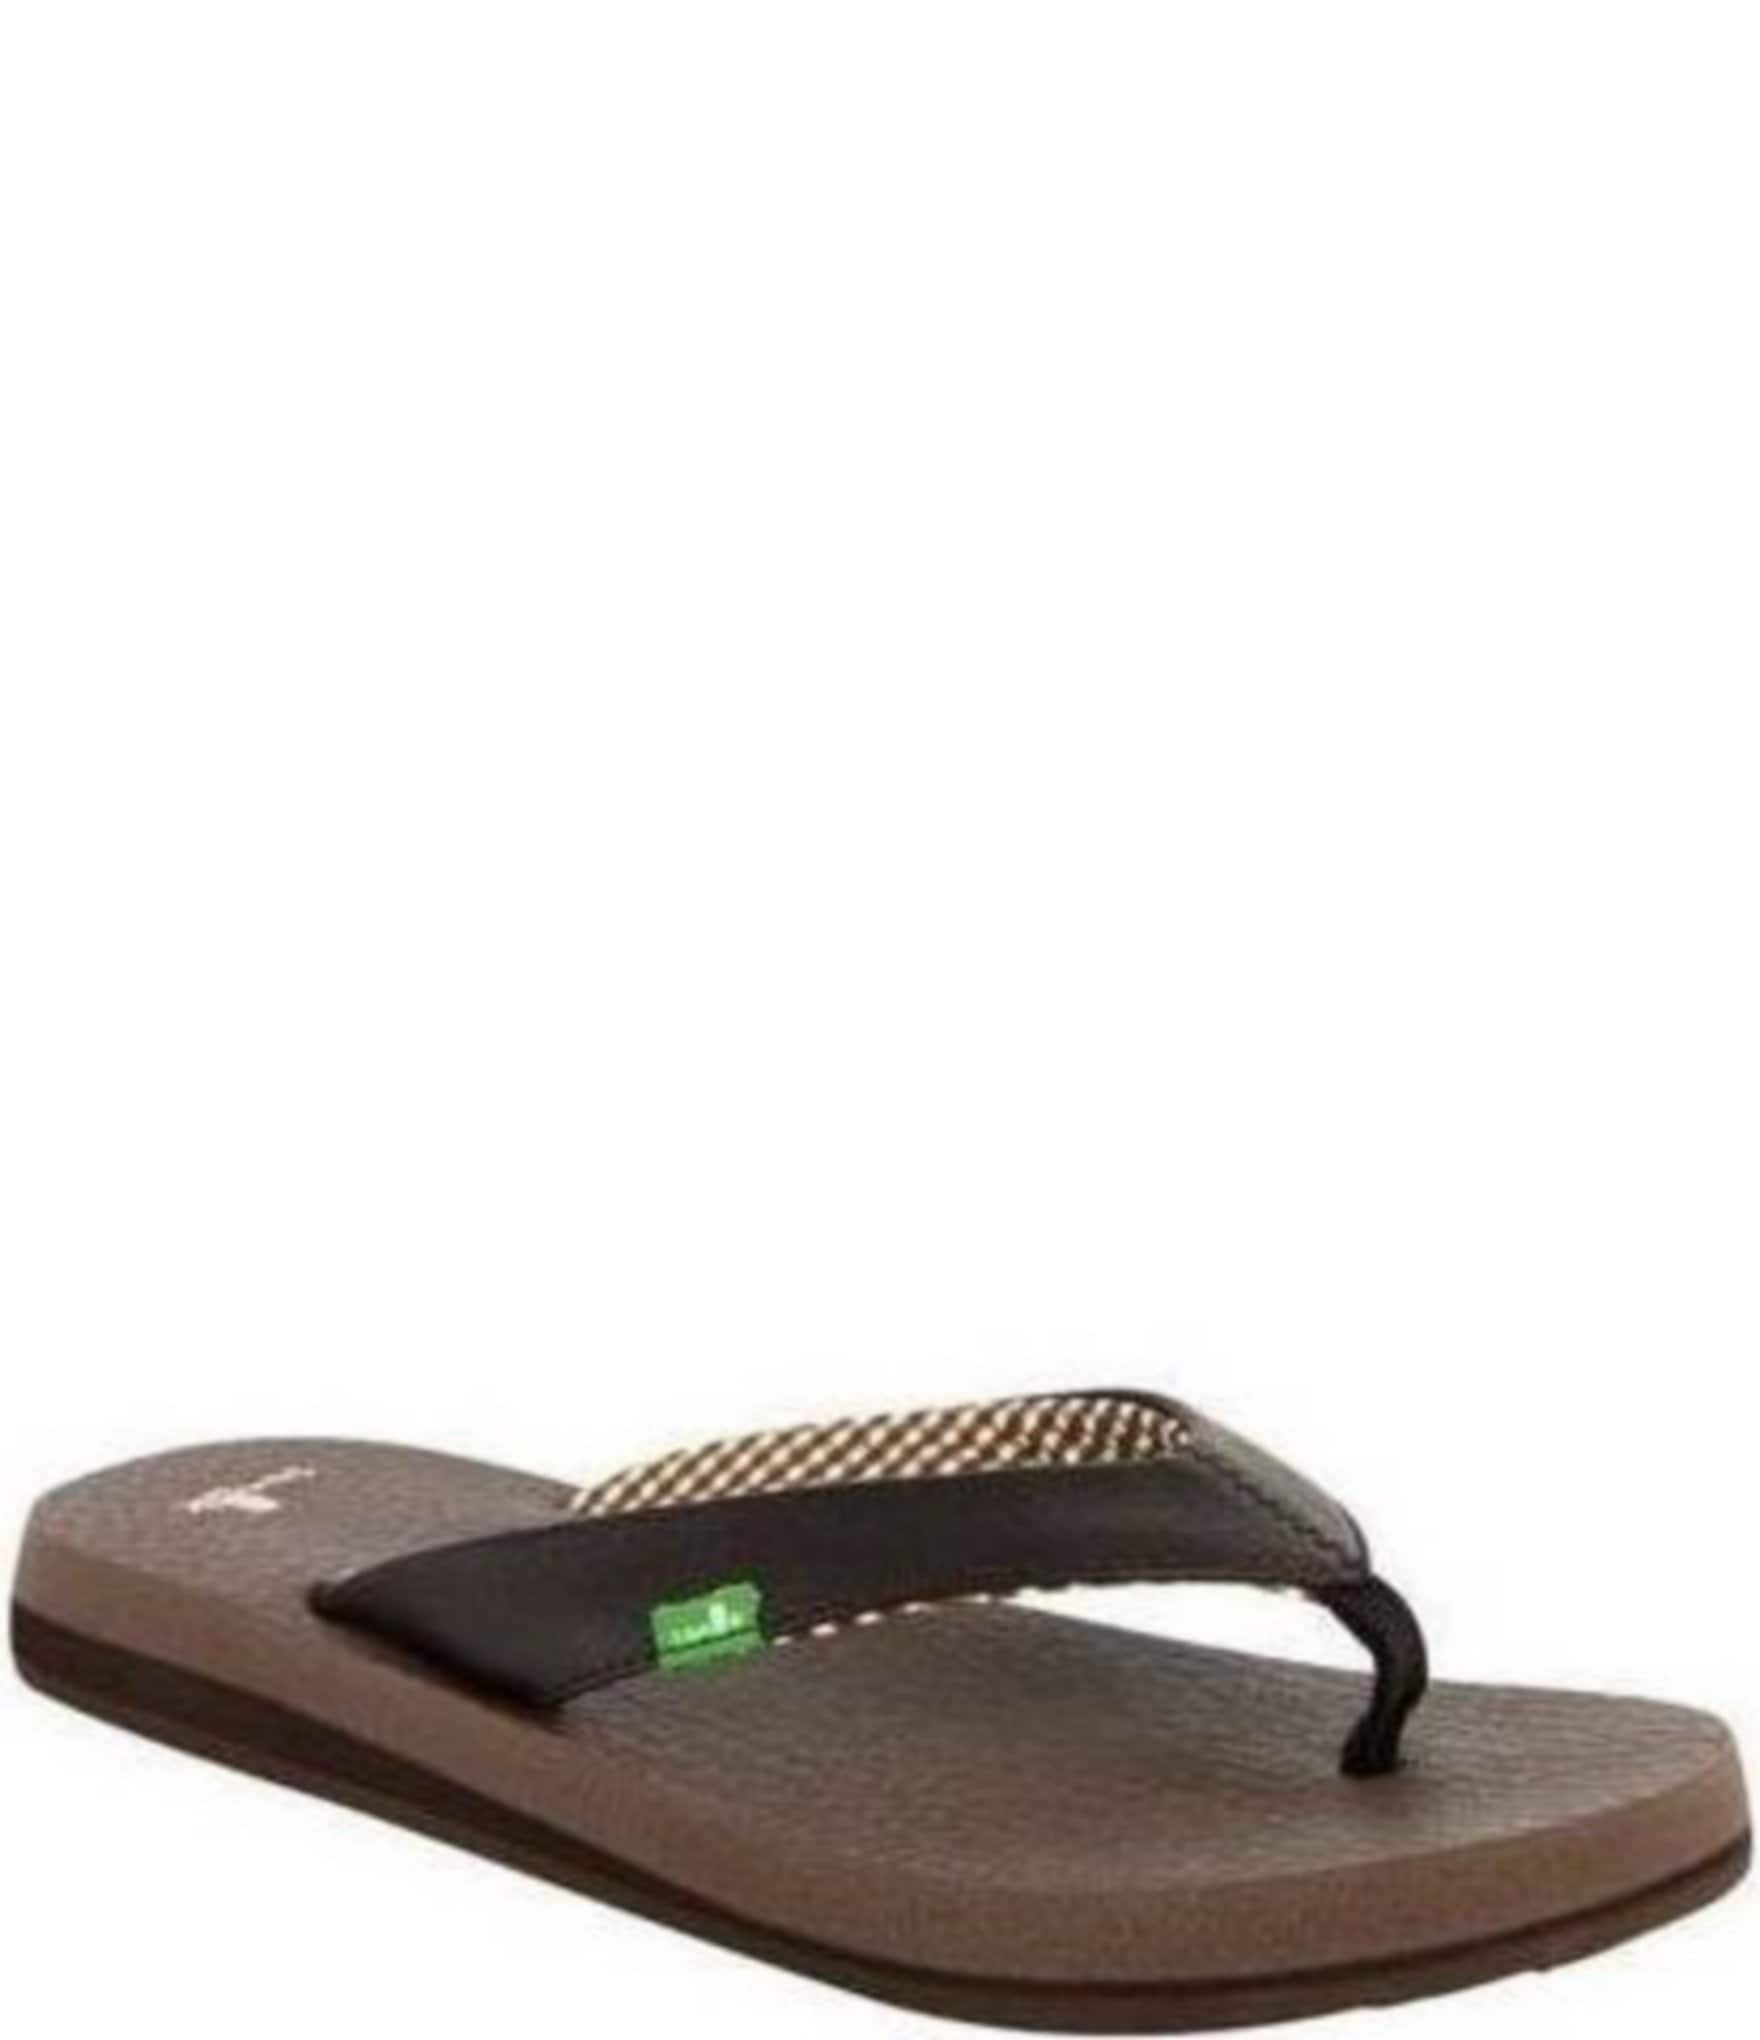 69203dc09 Sanuk Shoes